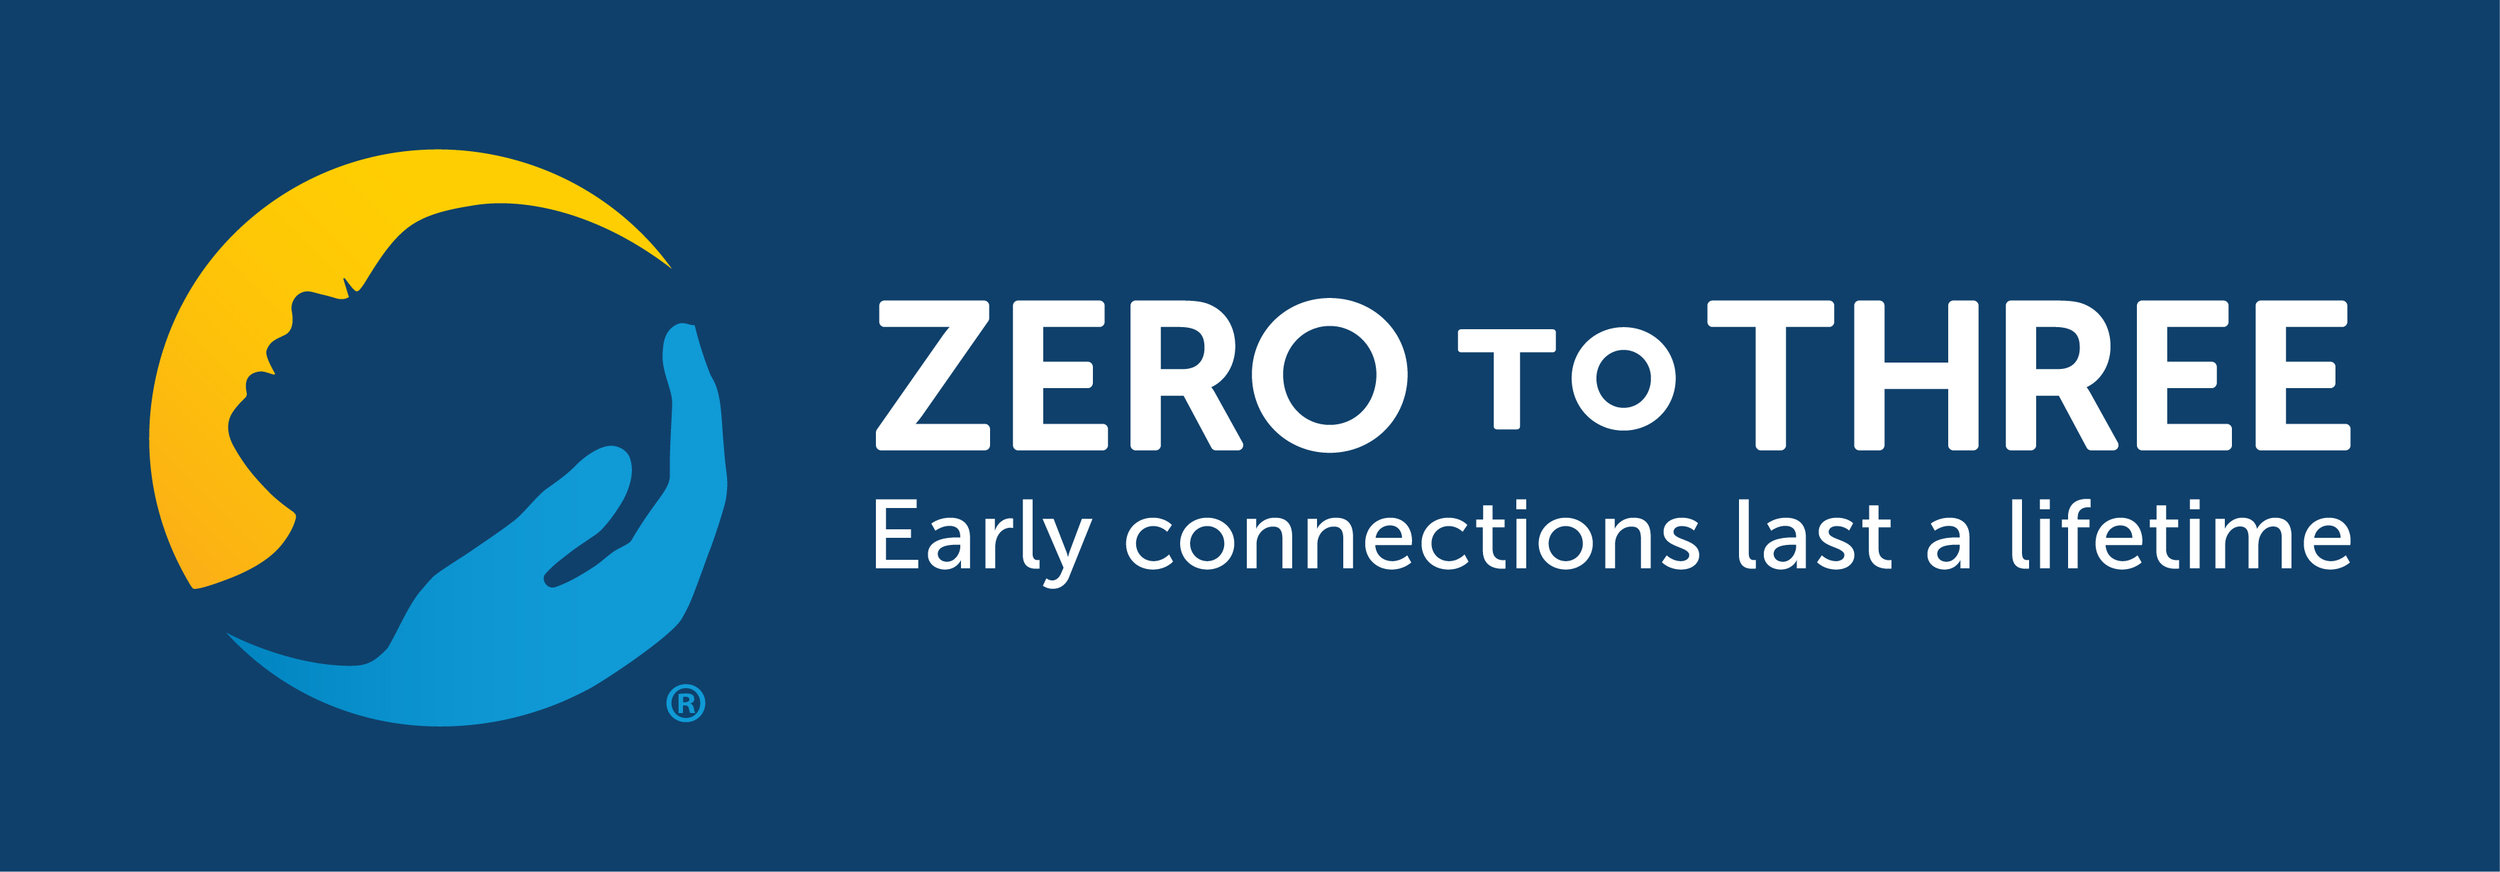 ZERO TO THREE - Our mission is to ensure that all babies and toddlers have a strong start in life. At ZERO TO THREE, we envision a society that has the knowledge and will to support all infants and toddlers in reaching their full potential.